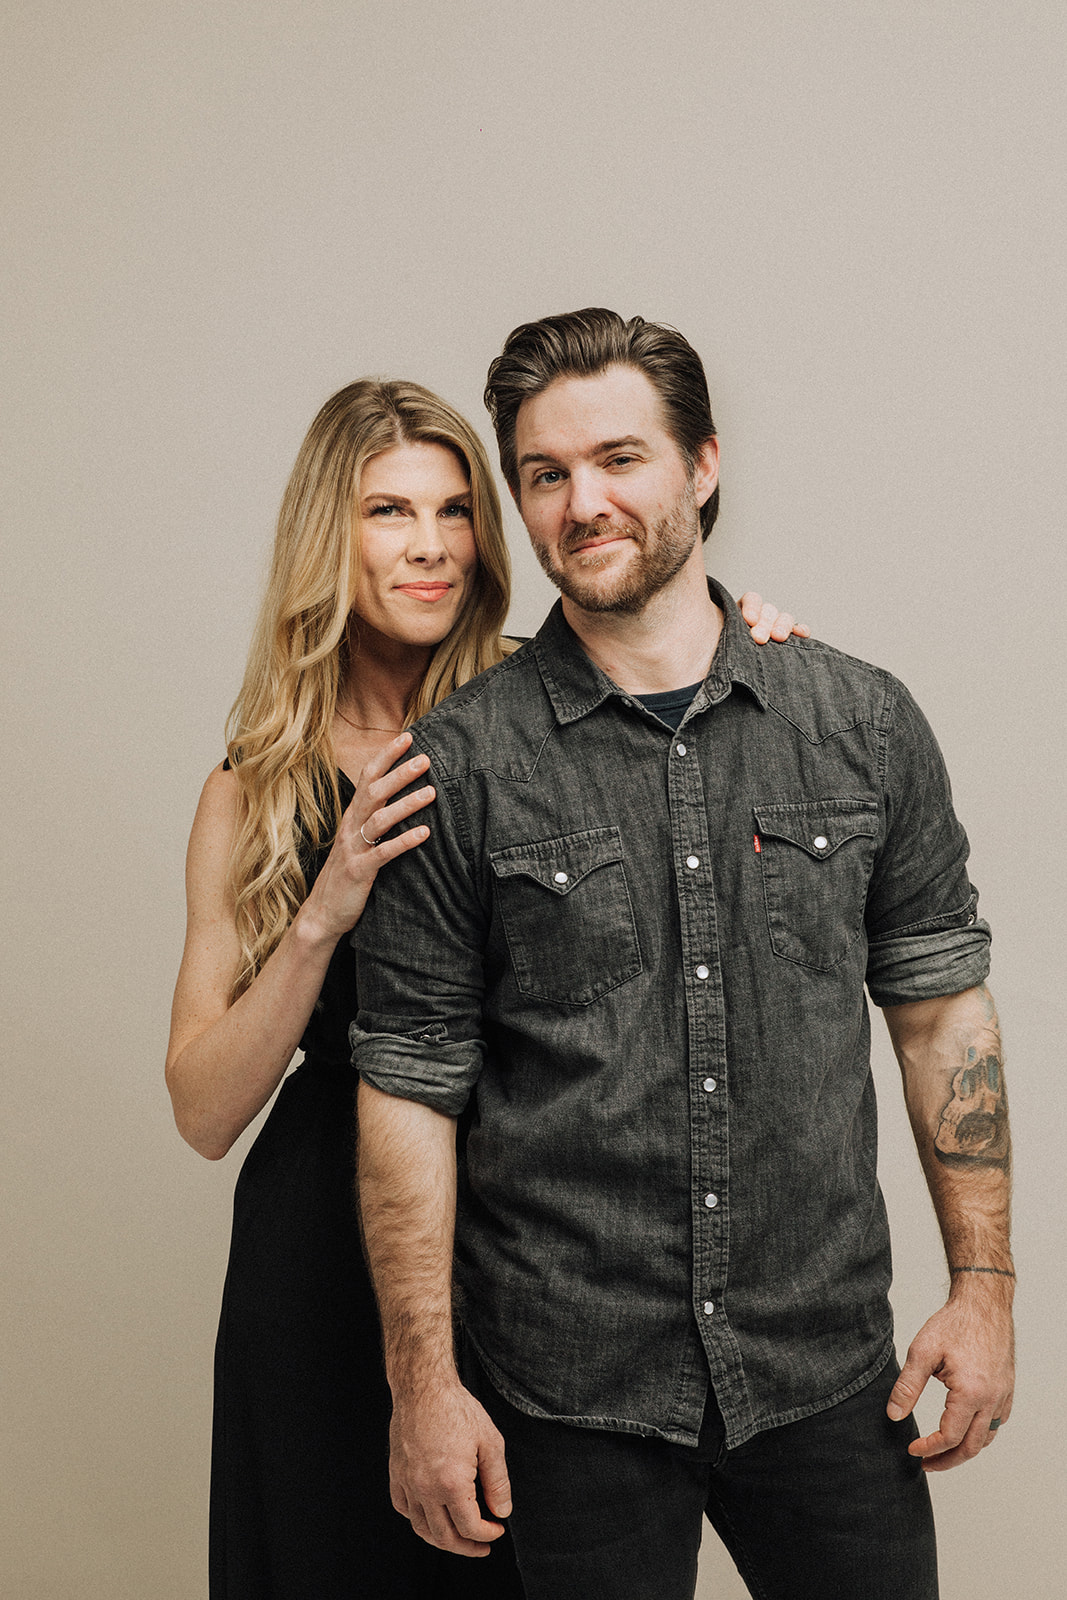 Hey guys! We are Lucas and Christa. - We caption and explanation goes here maybe an introduction and a thank you of some sorts. This can expand or get smaller depnding on how much text you want to put here. Thank you,Christa and Lucas Gifford